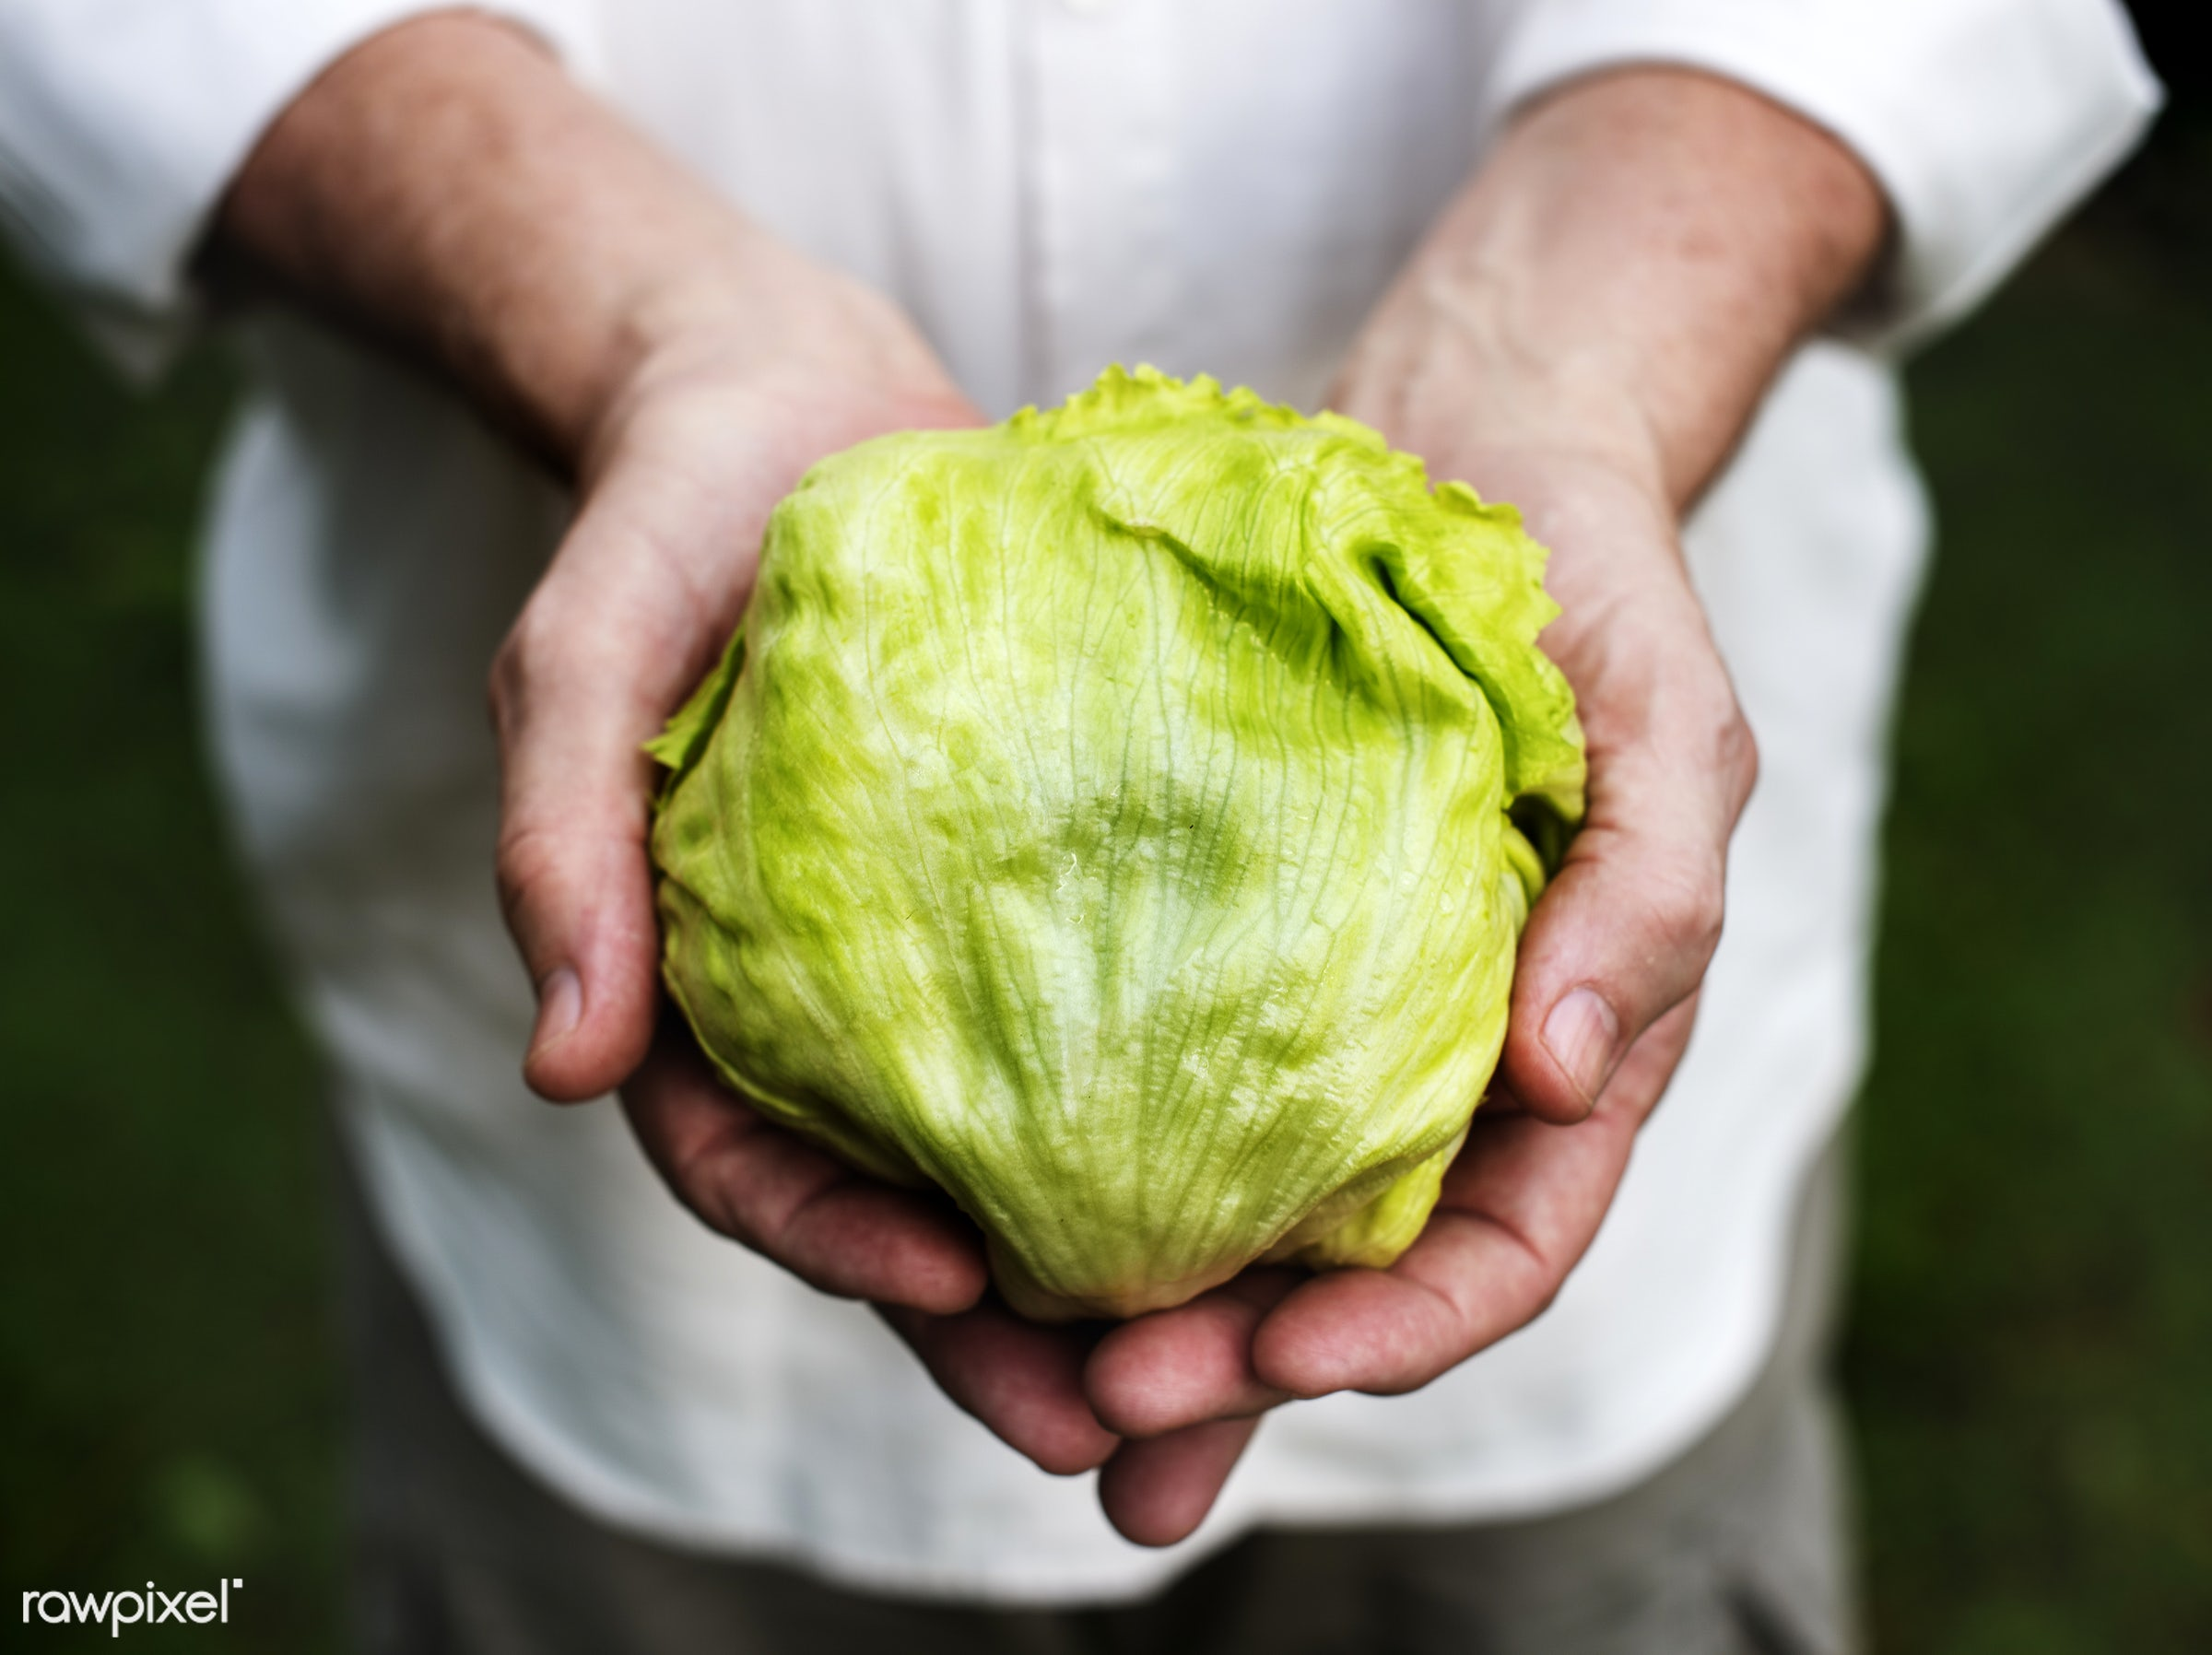 plant, raw, cuisine, crop, hands, fresh, ingredient, cultivation, pick, agriculture, farming, product, organic, nutrition,...